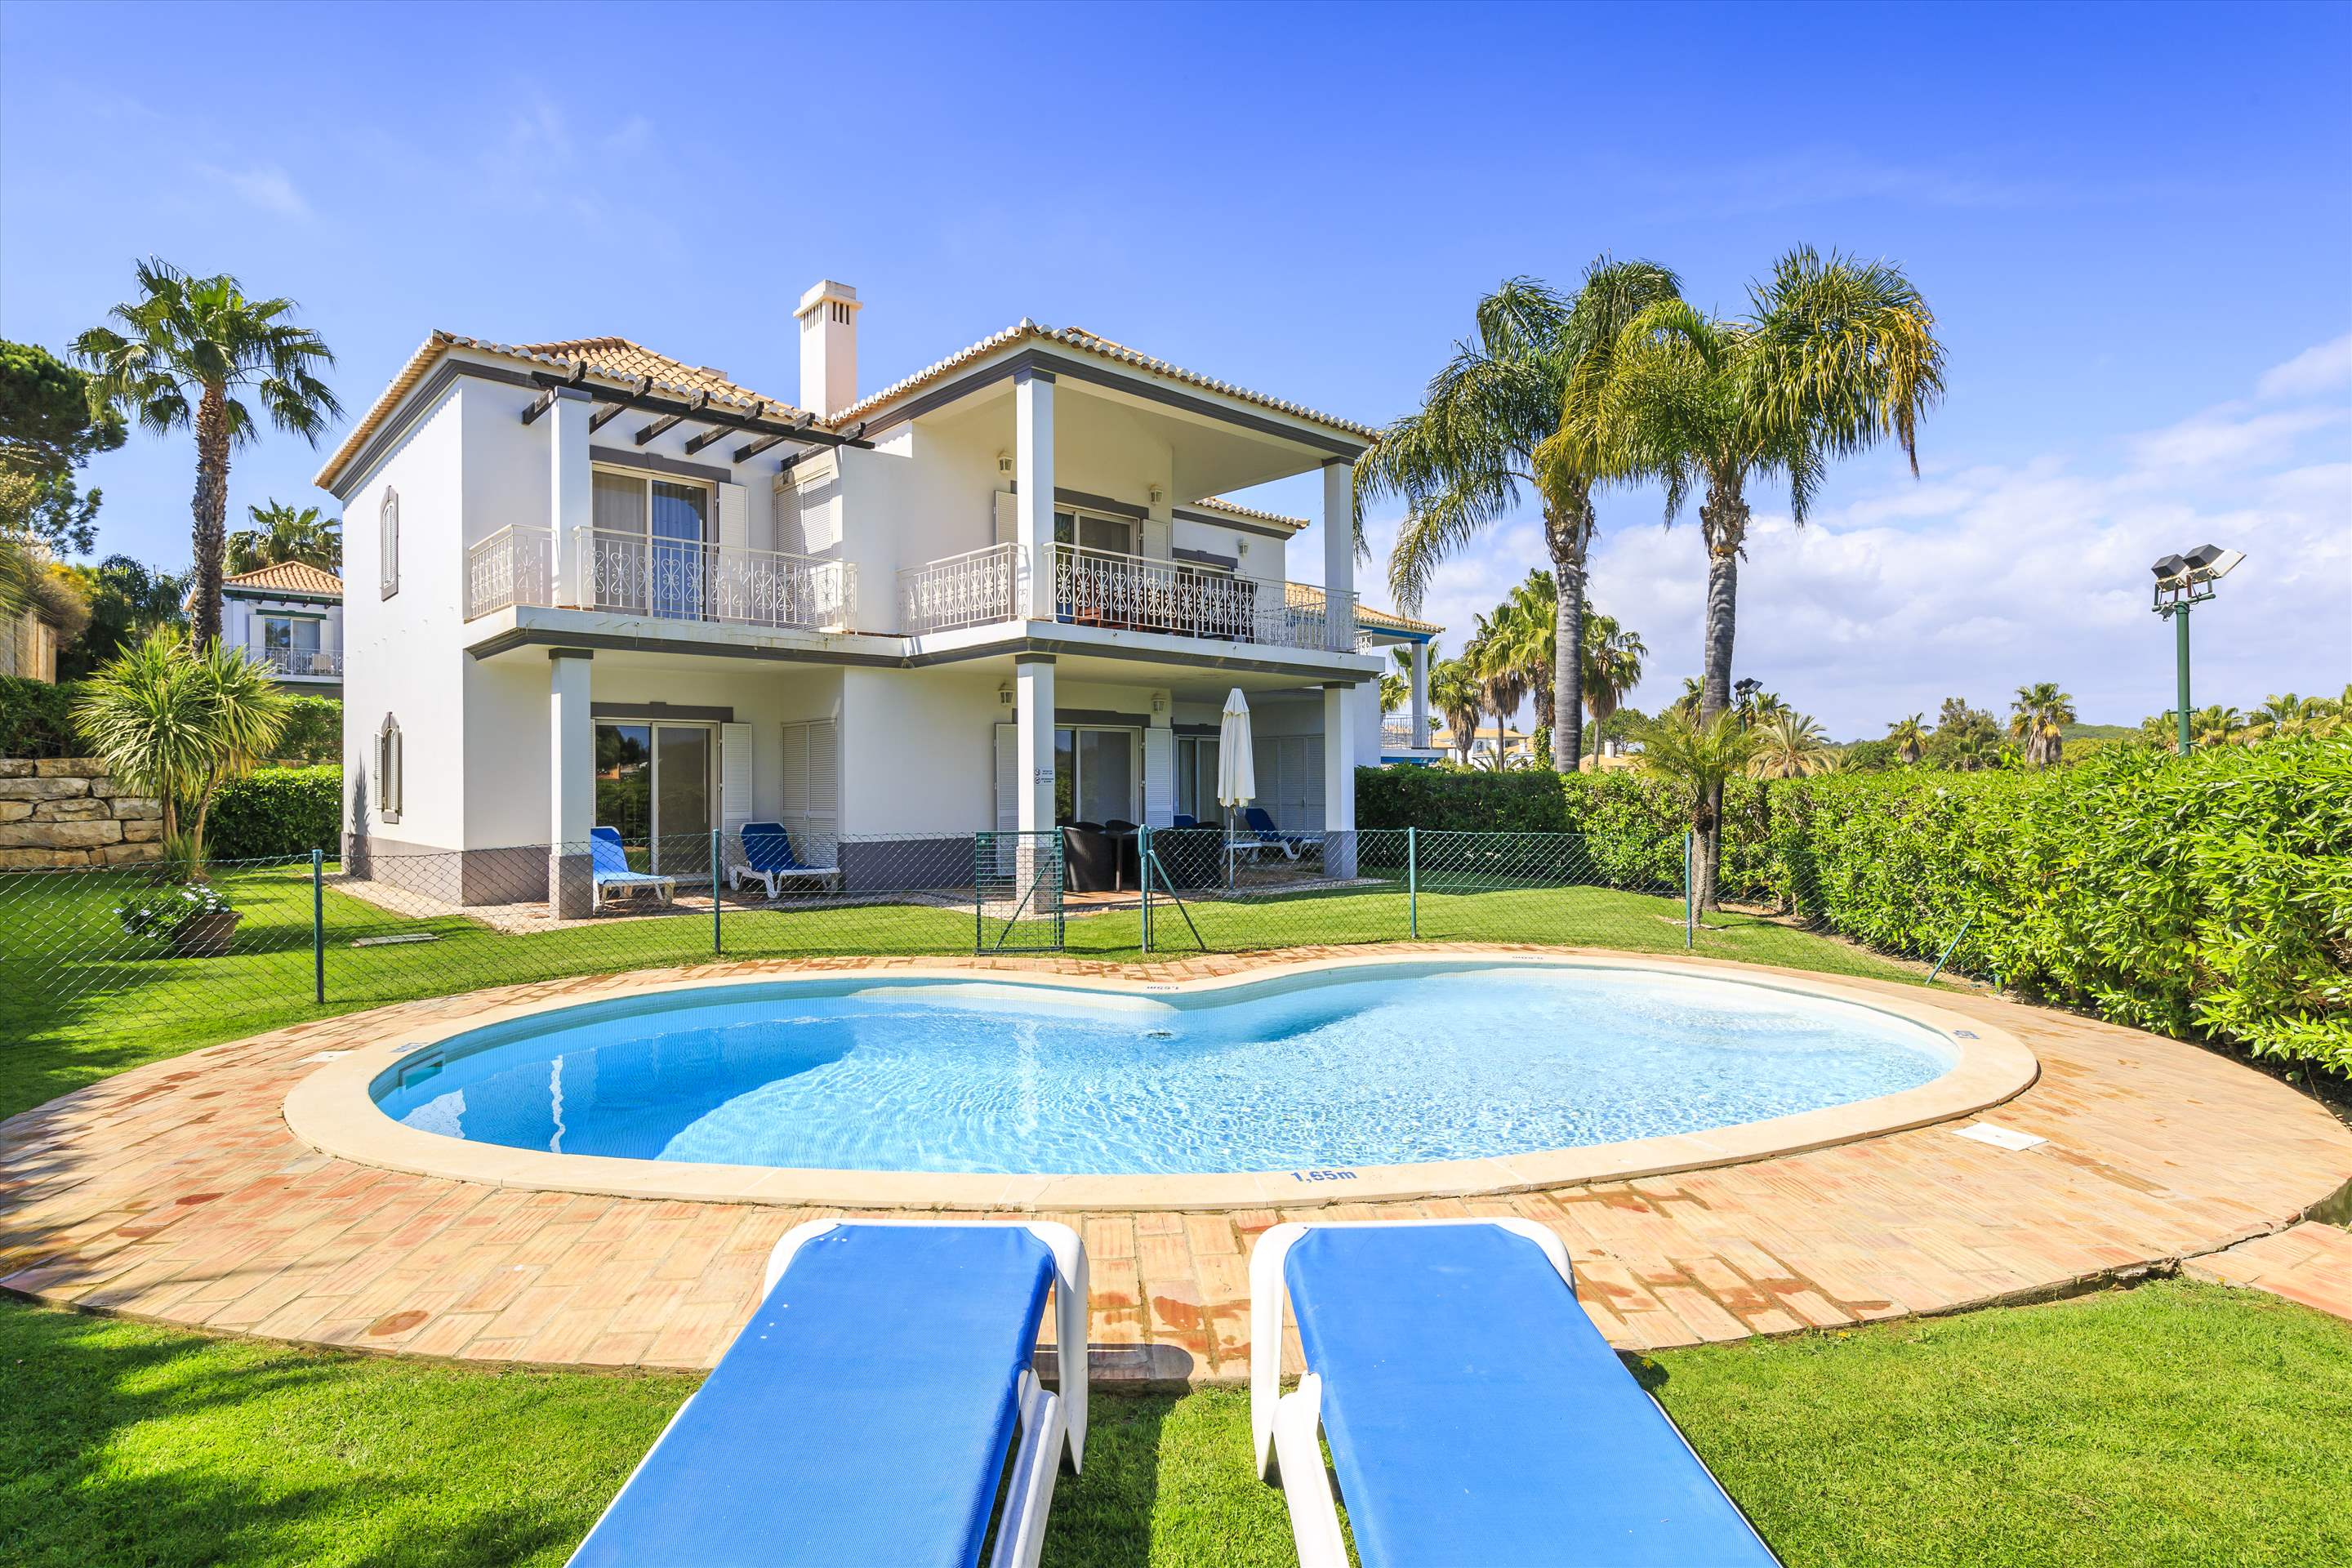 Encosta do Lago 2 Bedroom Apt, Private Pool, 2 bedroom apartment in Encosta do Lago Resort, Algarve